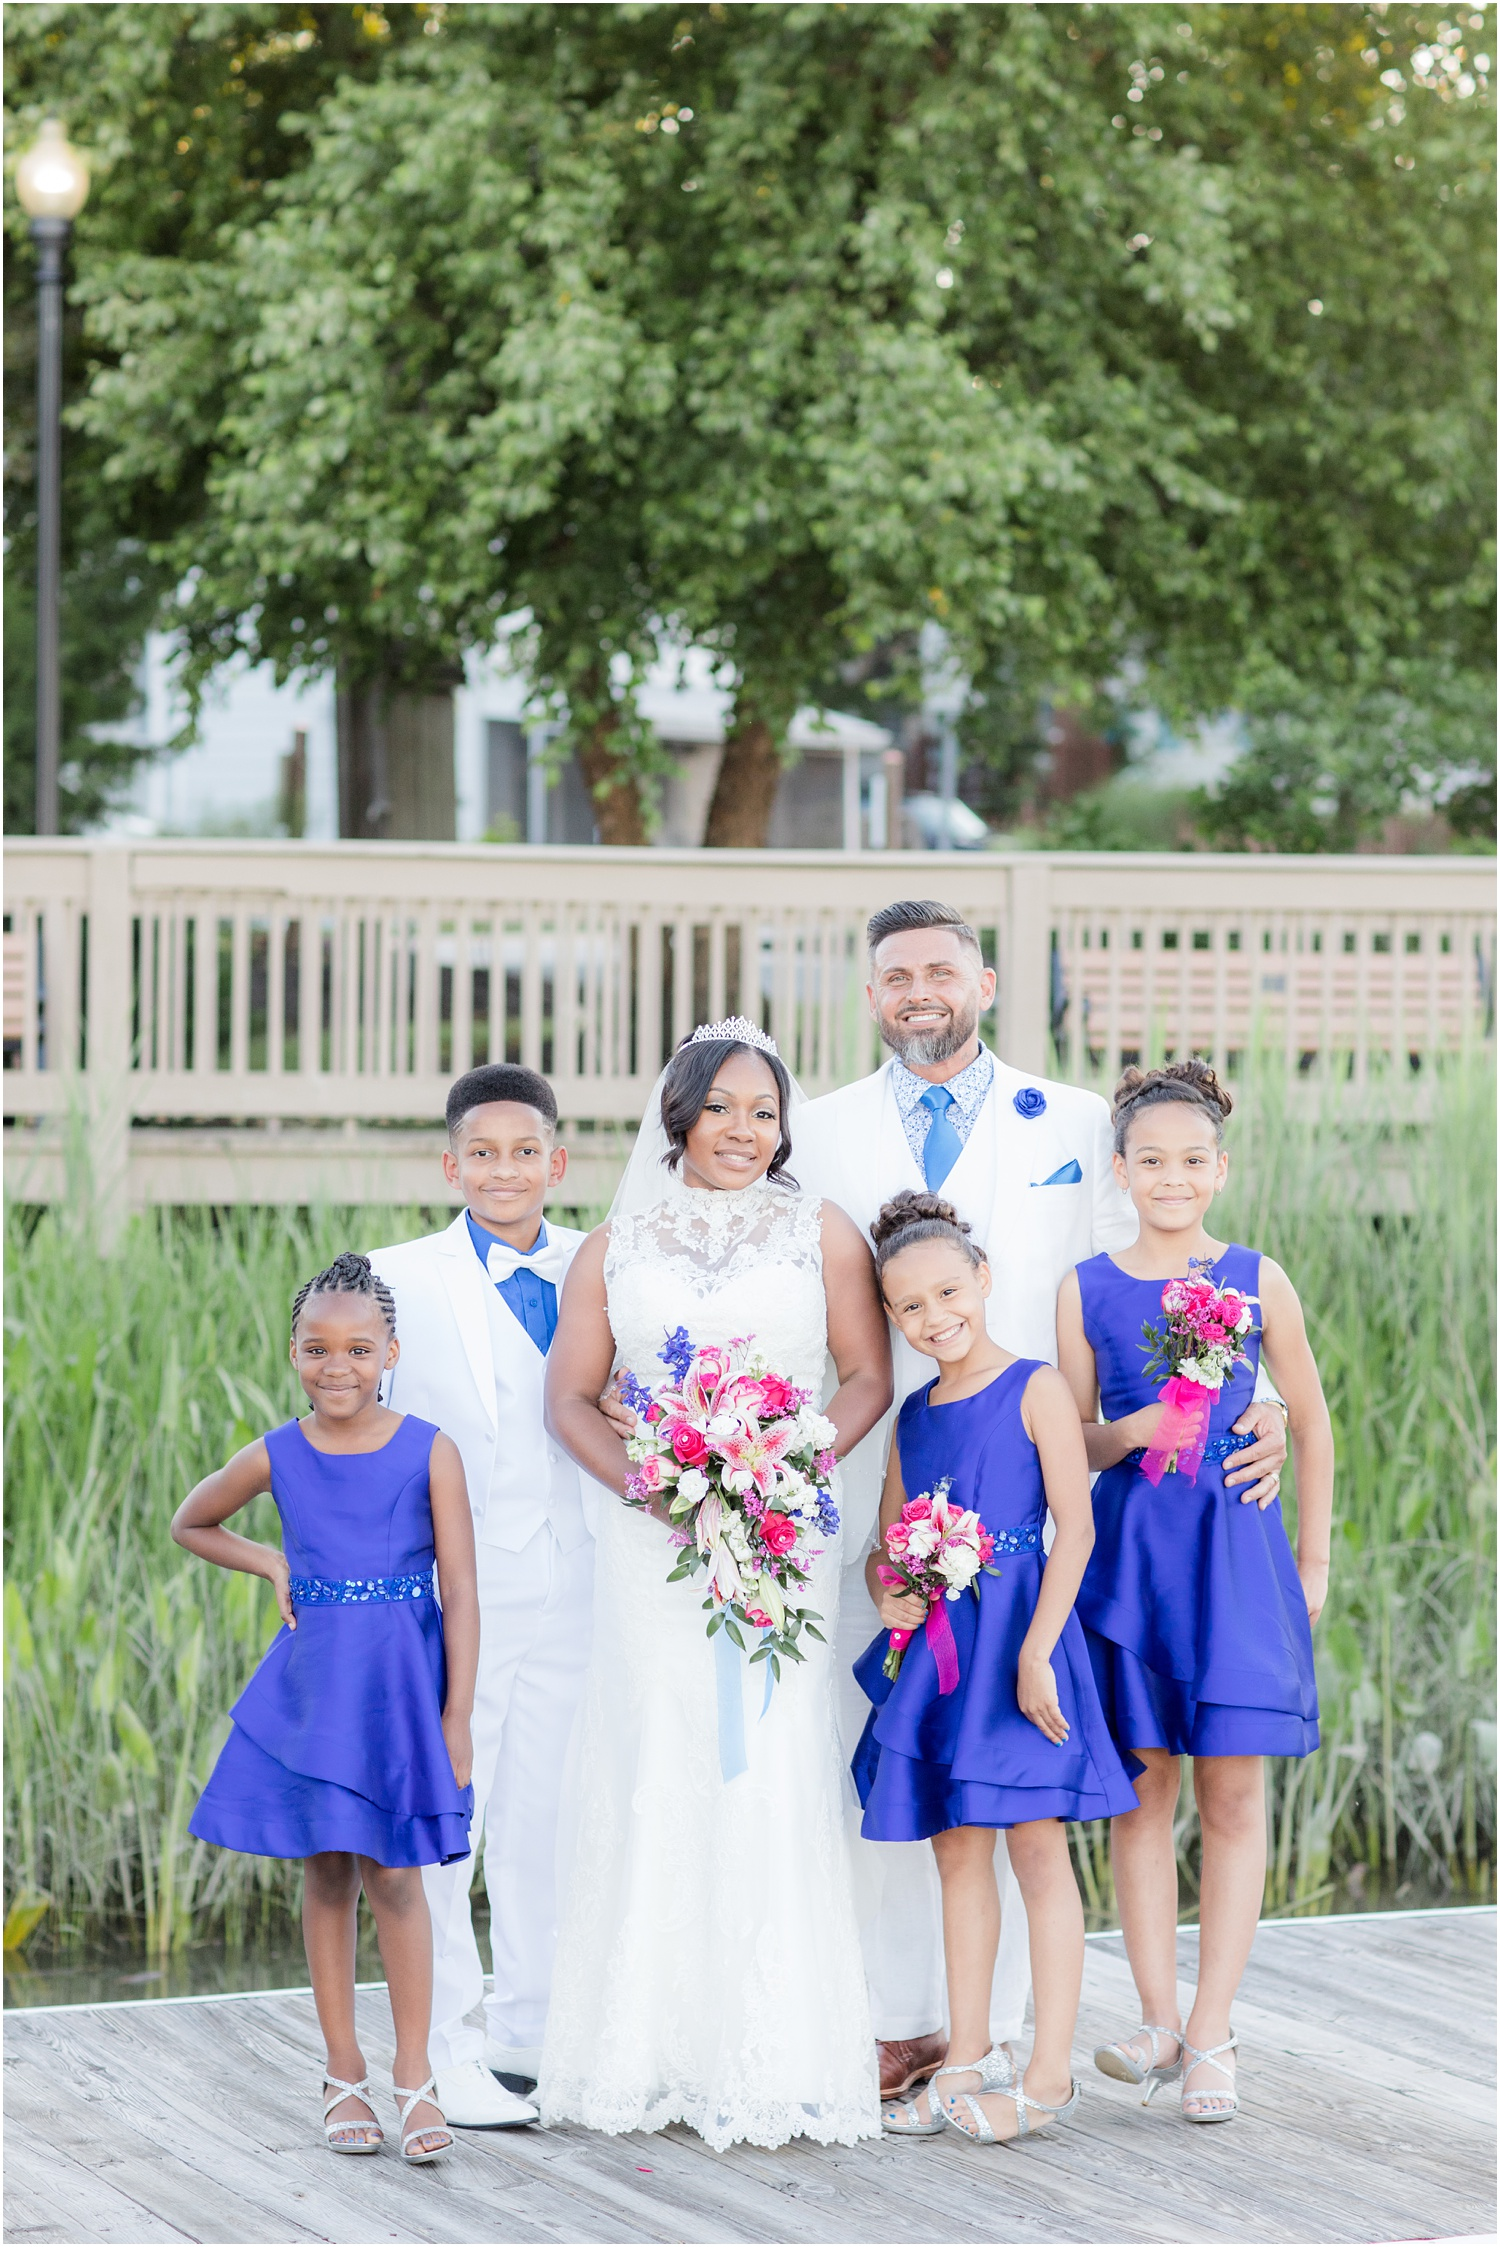 Formal family photos from a wedding in Chesapeake City, MD.